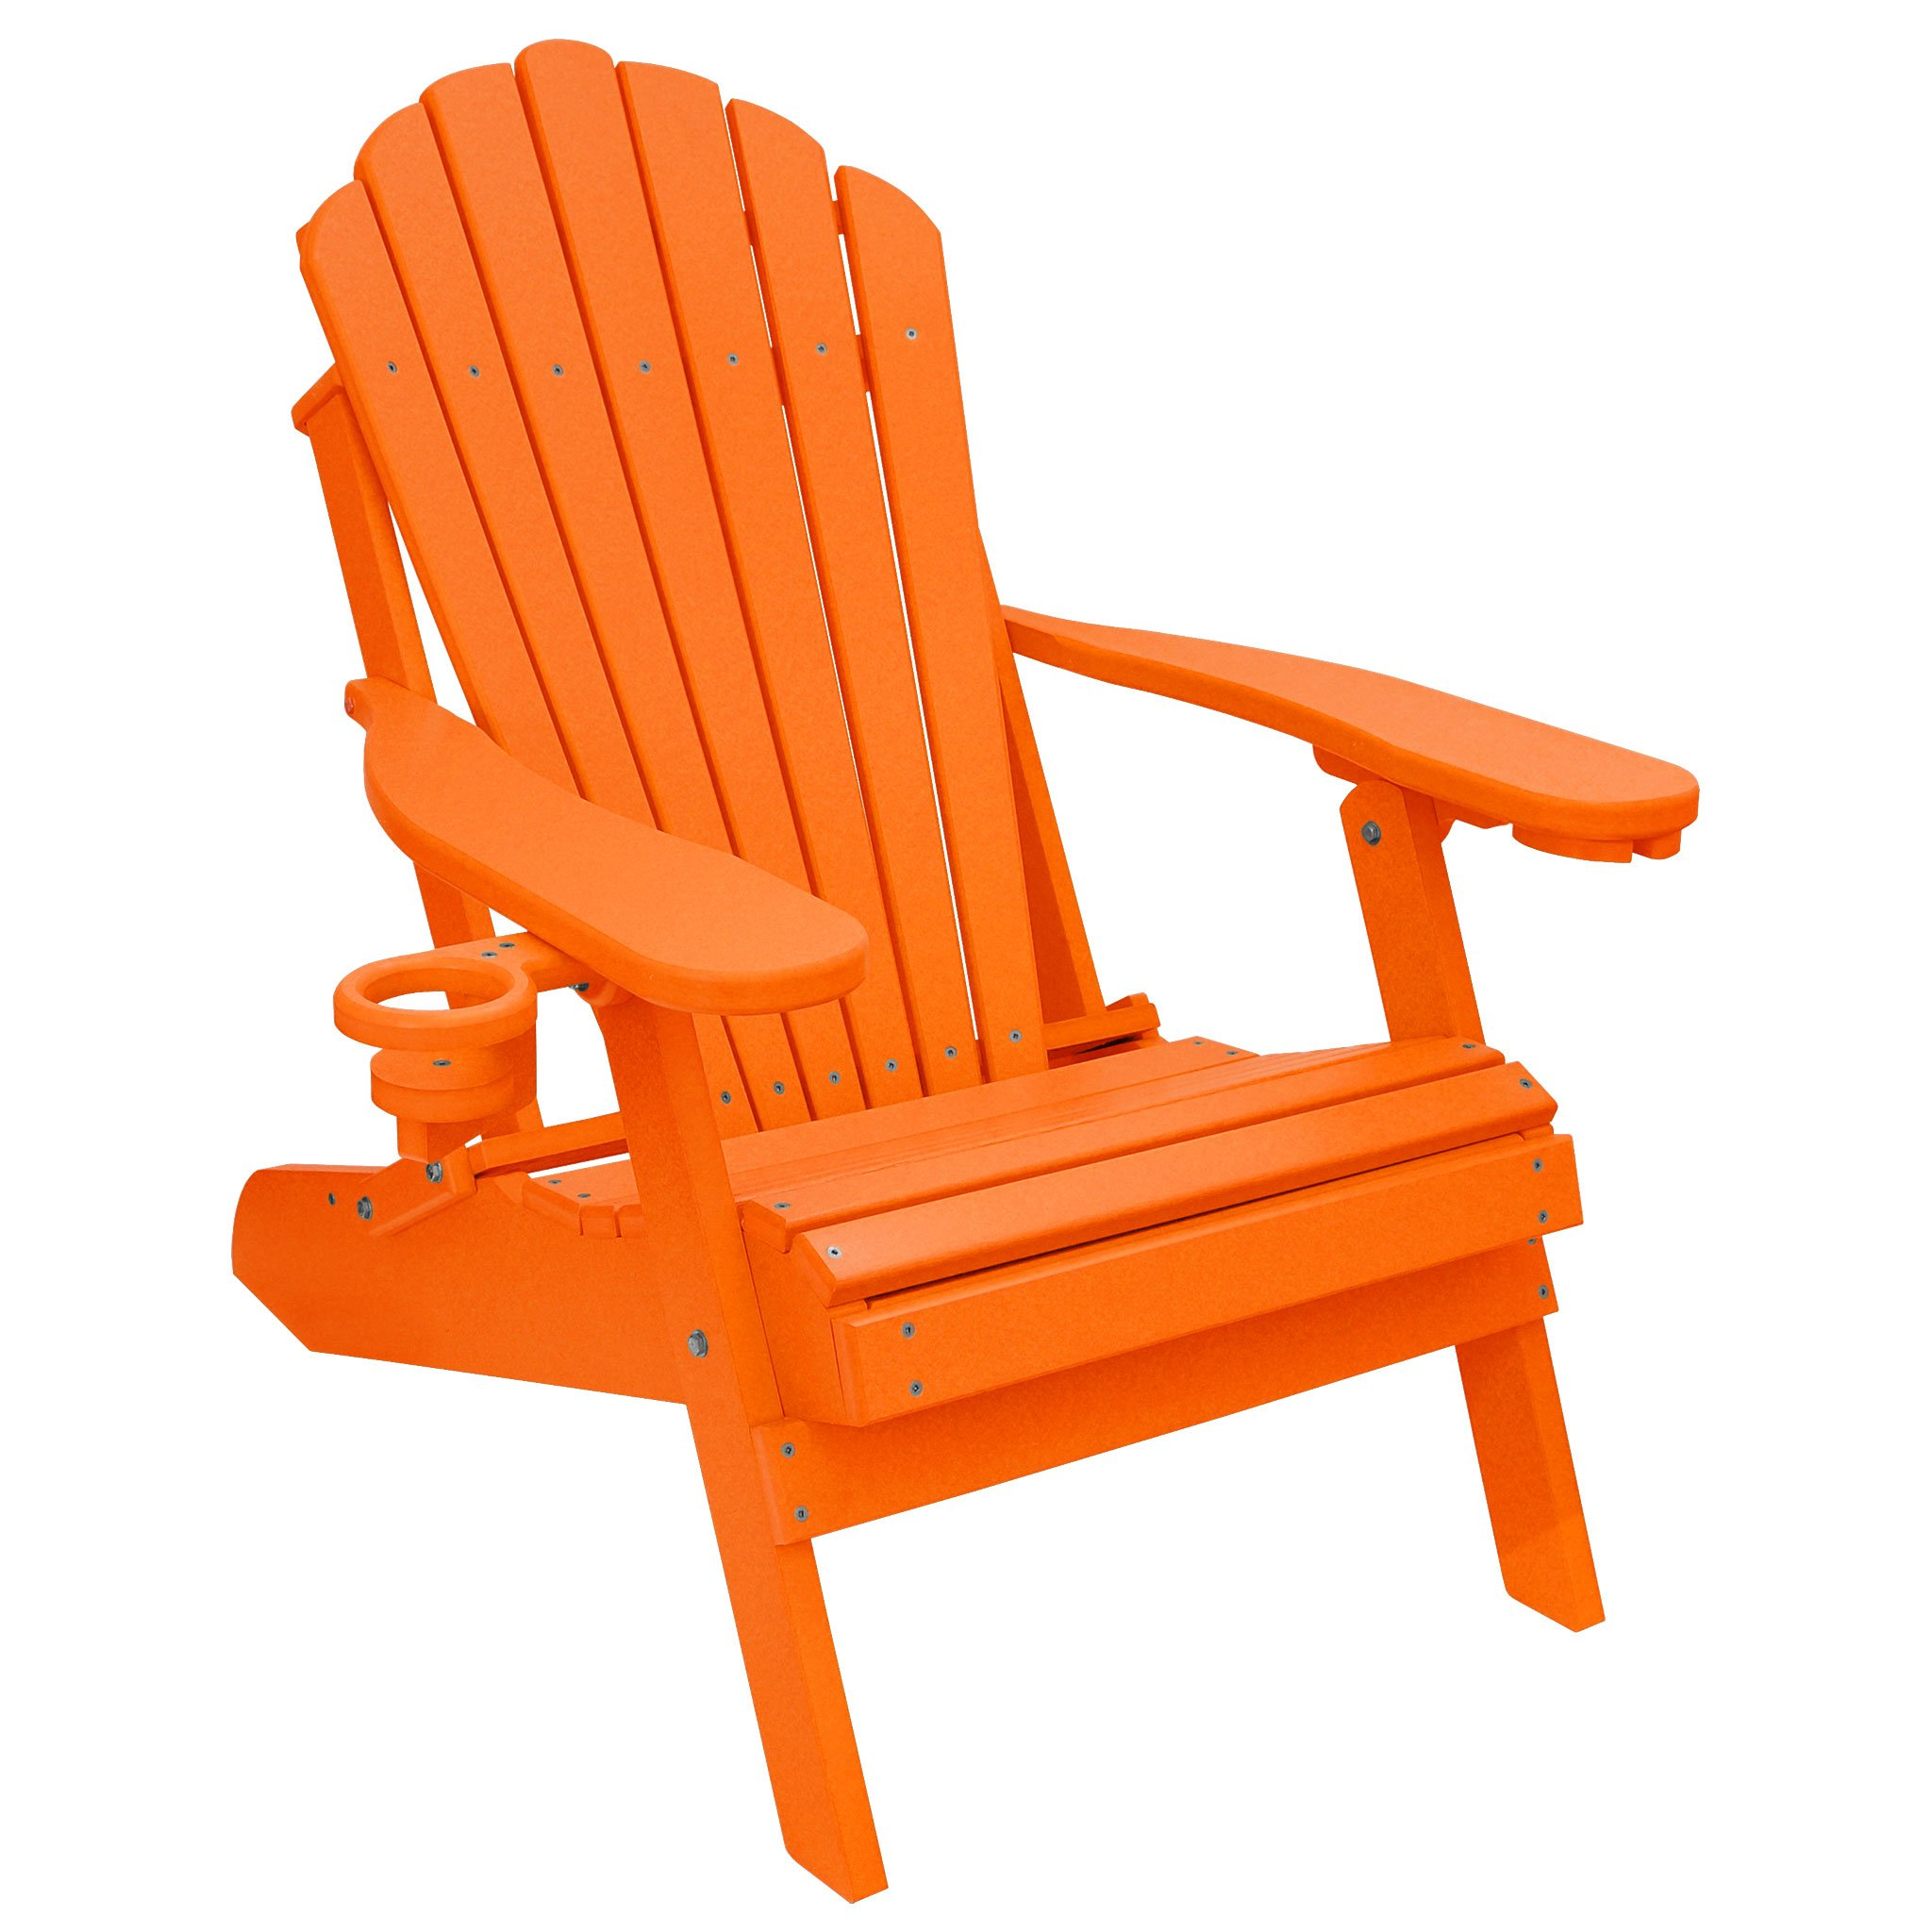 ECCB Outdoor Outer Banks Deluxe Oversized Poly Lumber Folding Adirondack Chair (Bright Orange) by ECCB Outdoor